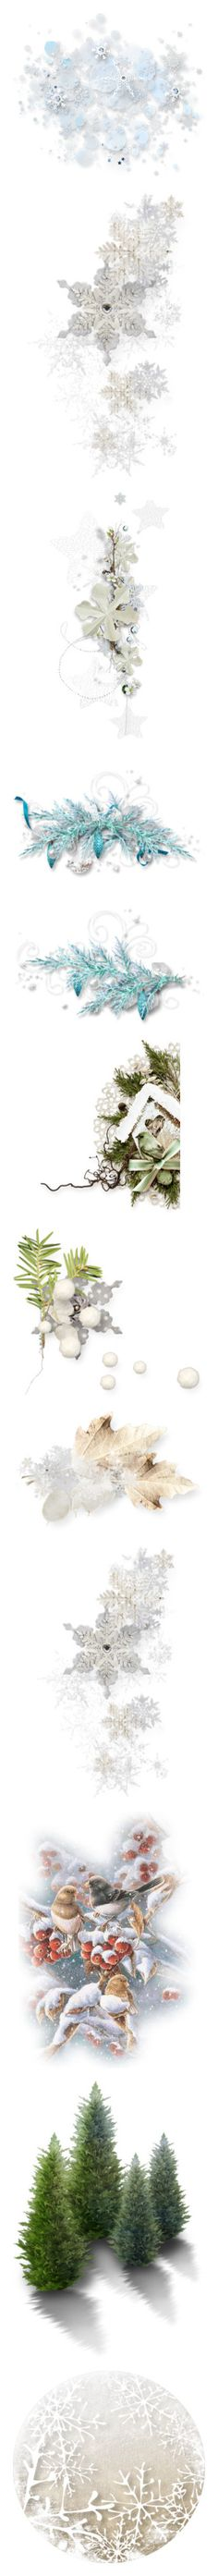 """""""Winter backgrounds"""" by ooh-la-la-beadtique ❤ liked on Polyvore featuring effects, fillers, backgrounds, decorations, flowers, embellishments, detail, christmas, winter and filler"""